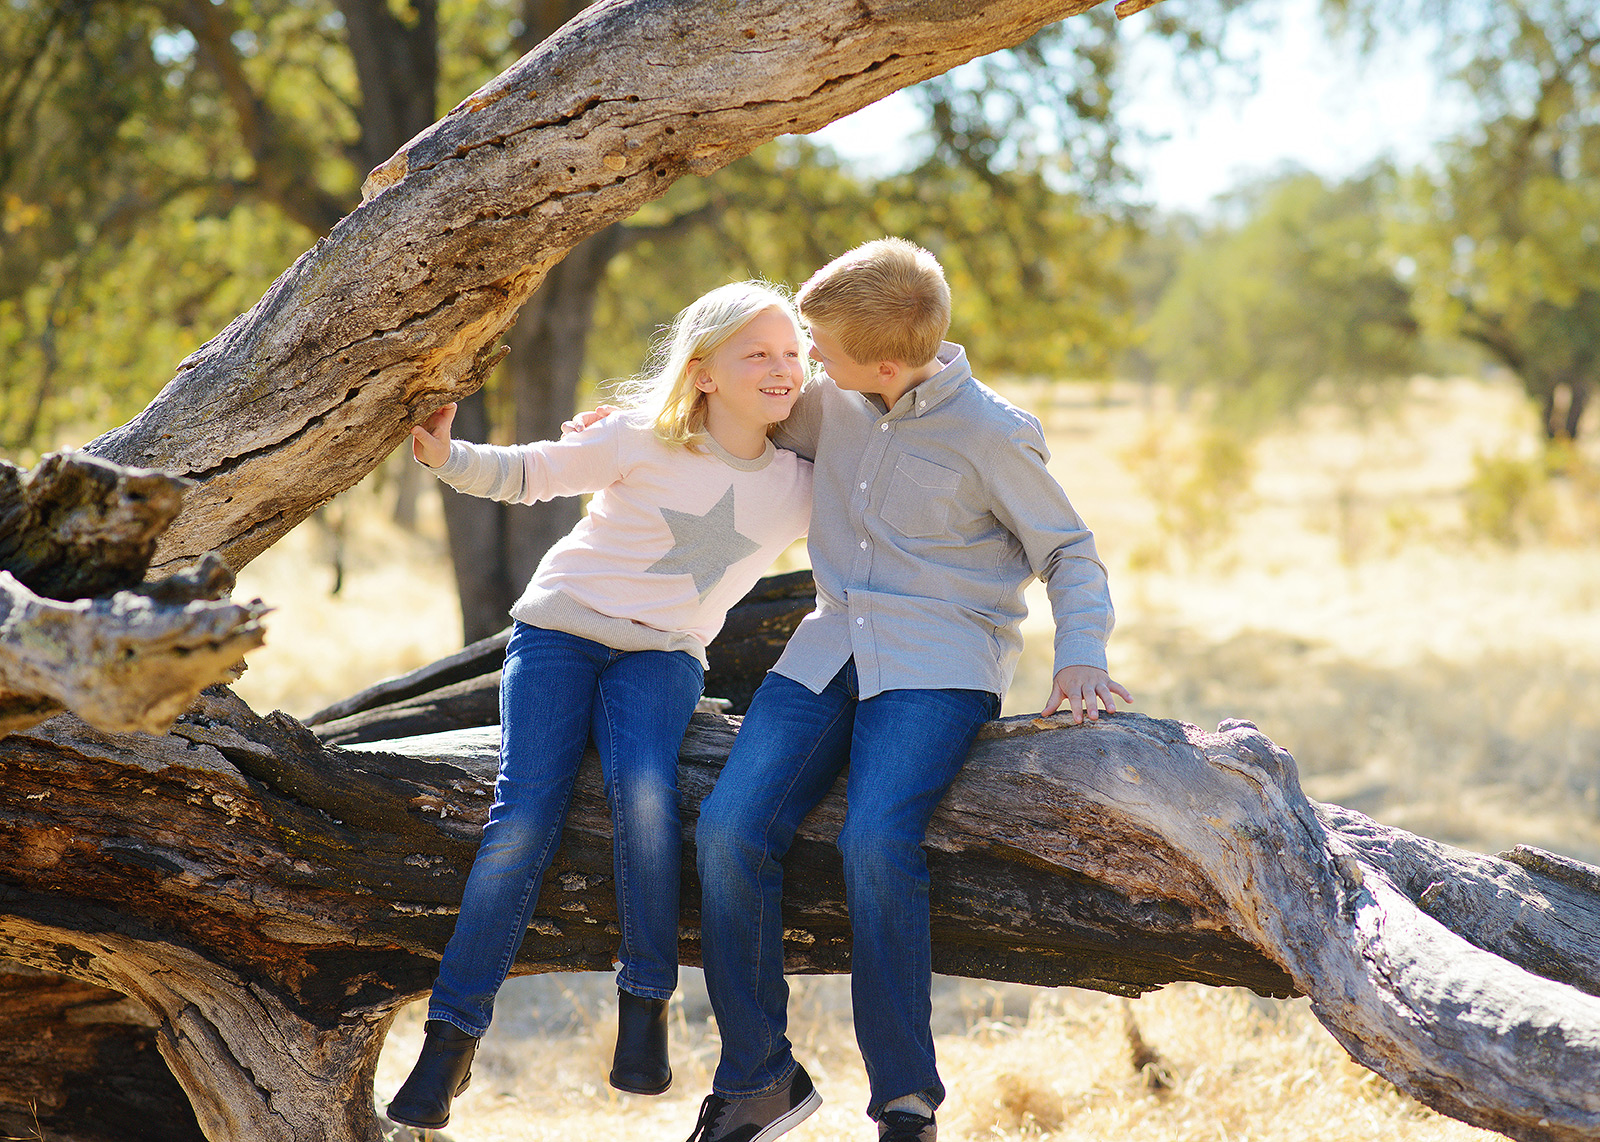 fair oaks family portraits on an artistic tree for fall pictures with photographer jill carmel